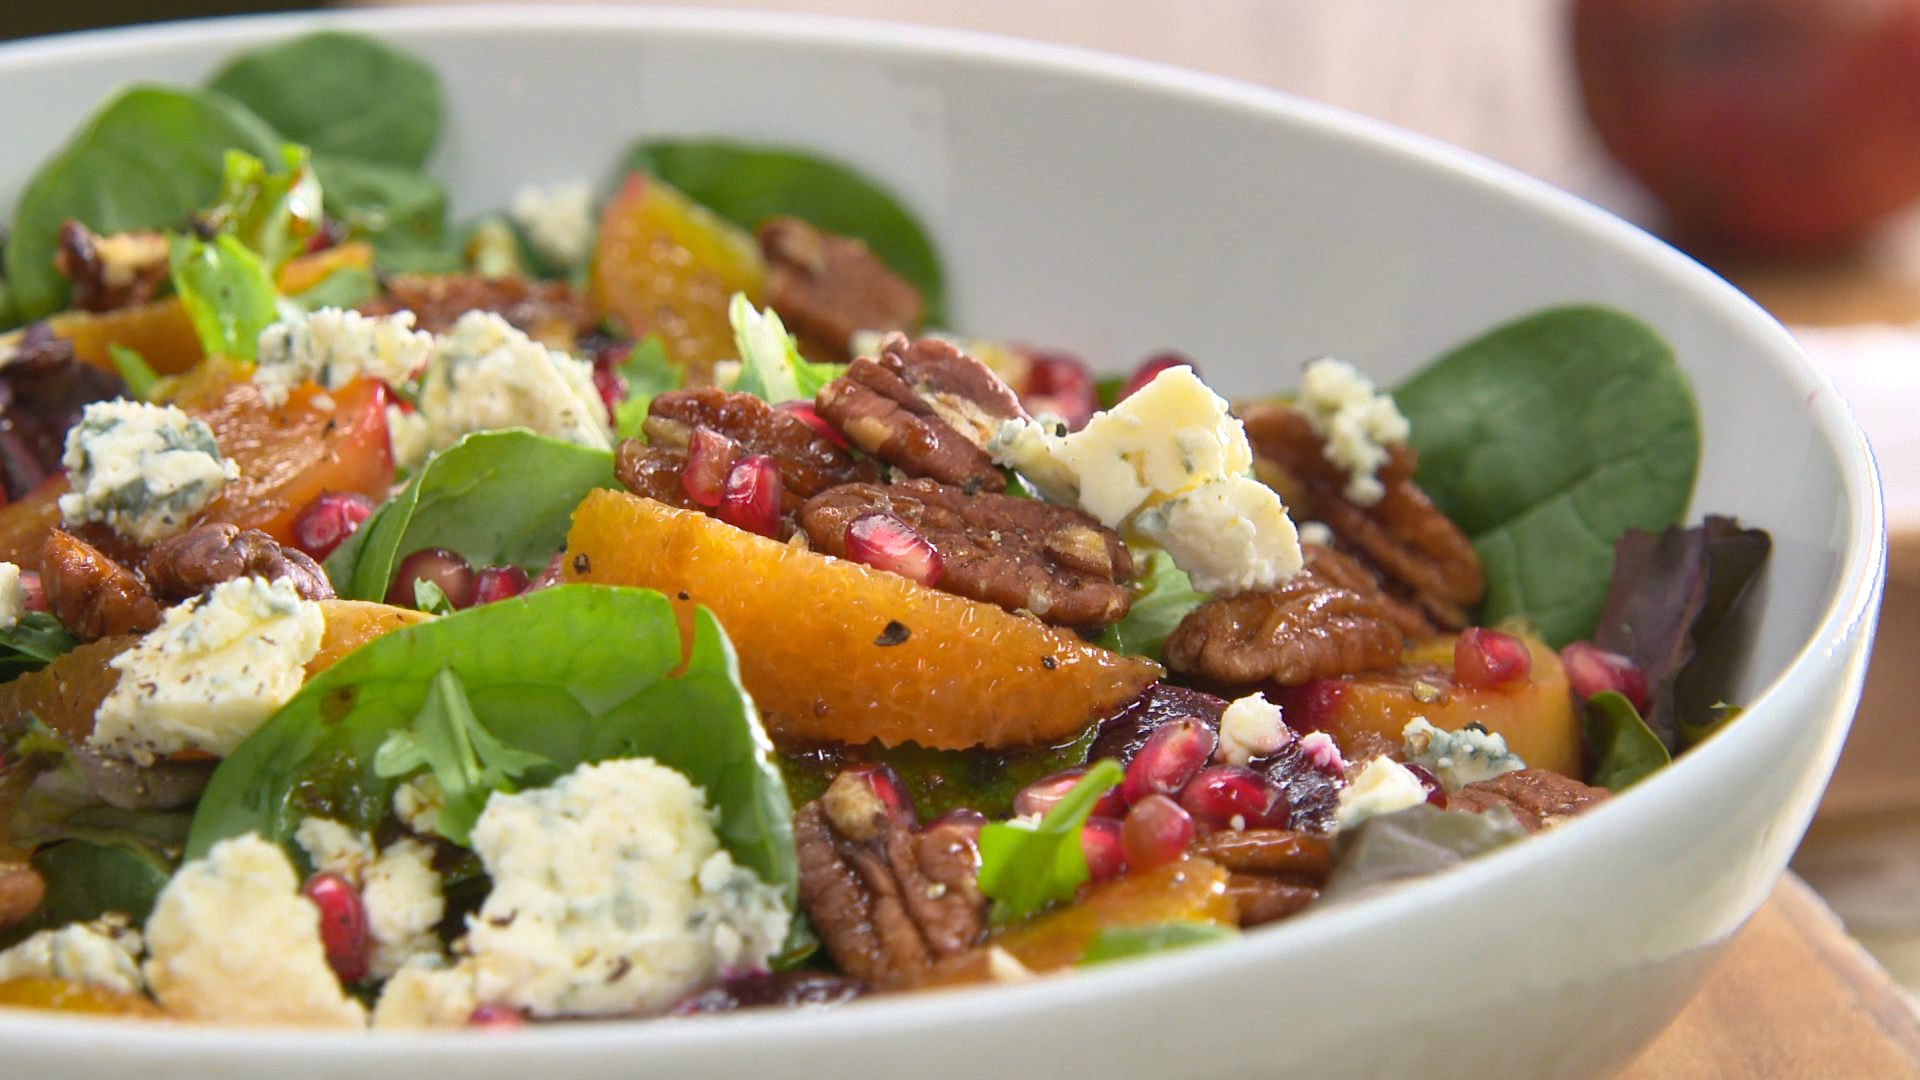 Keep up your healthy eating habits with this winter beet and pomegranate salad recipe